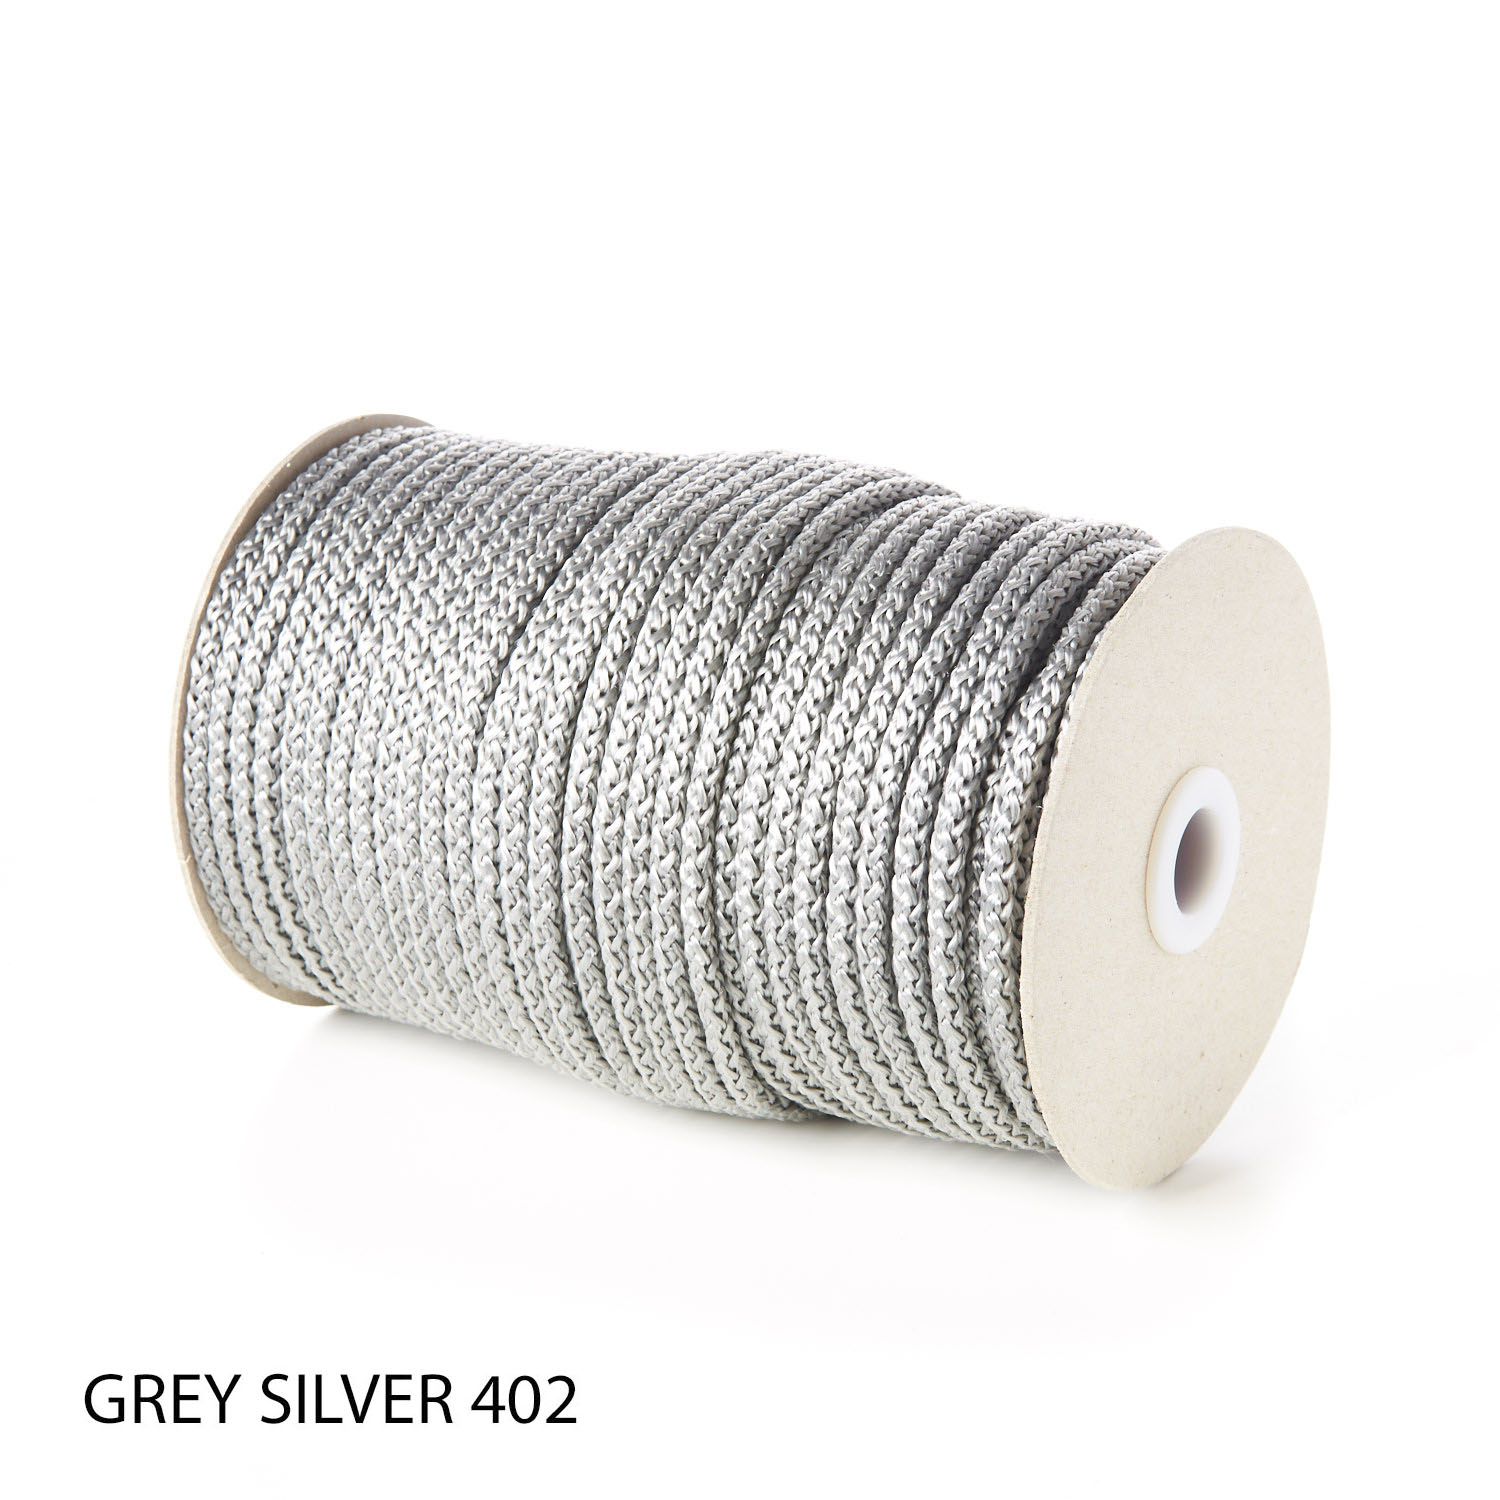 Grey Polypropylene Knitted Cords Round String Rope Strong